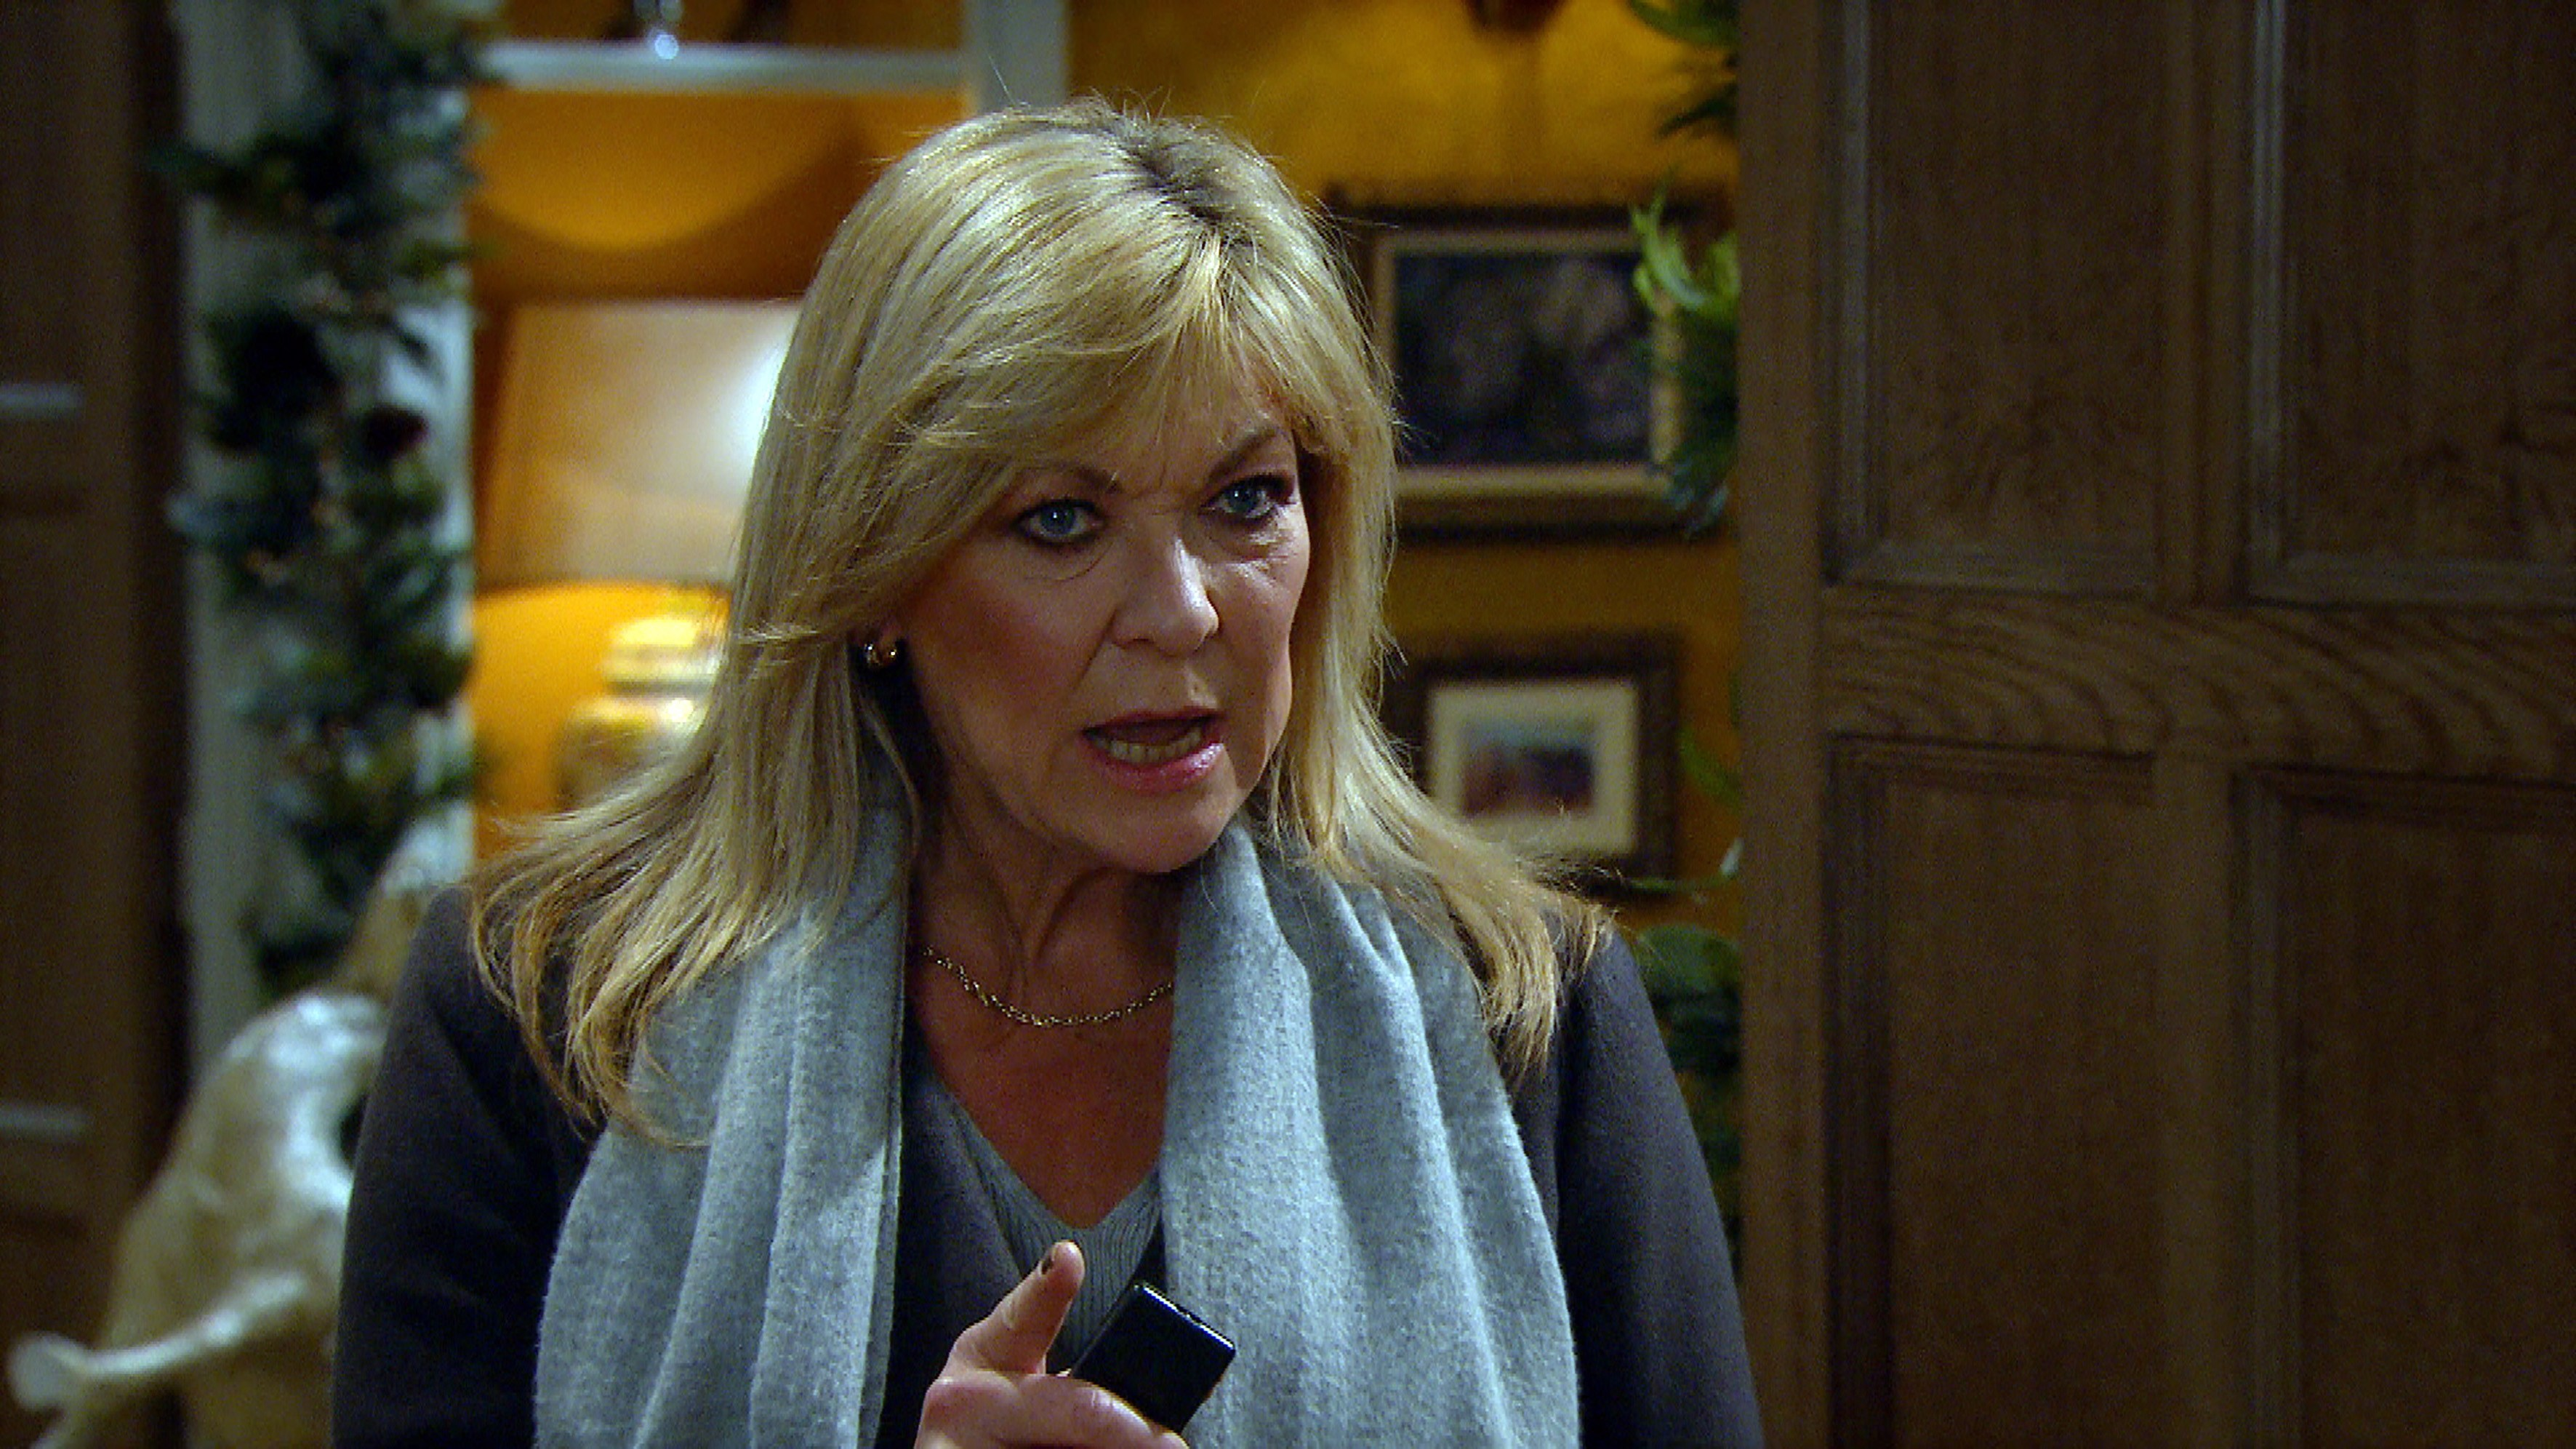 Emmerdale spoilers: Kim Tate returns tonight – and is left furious